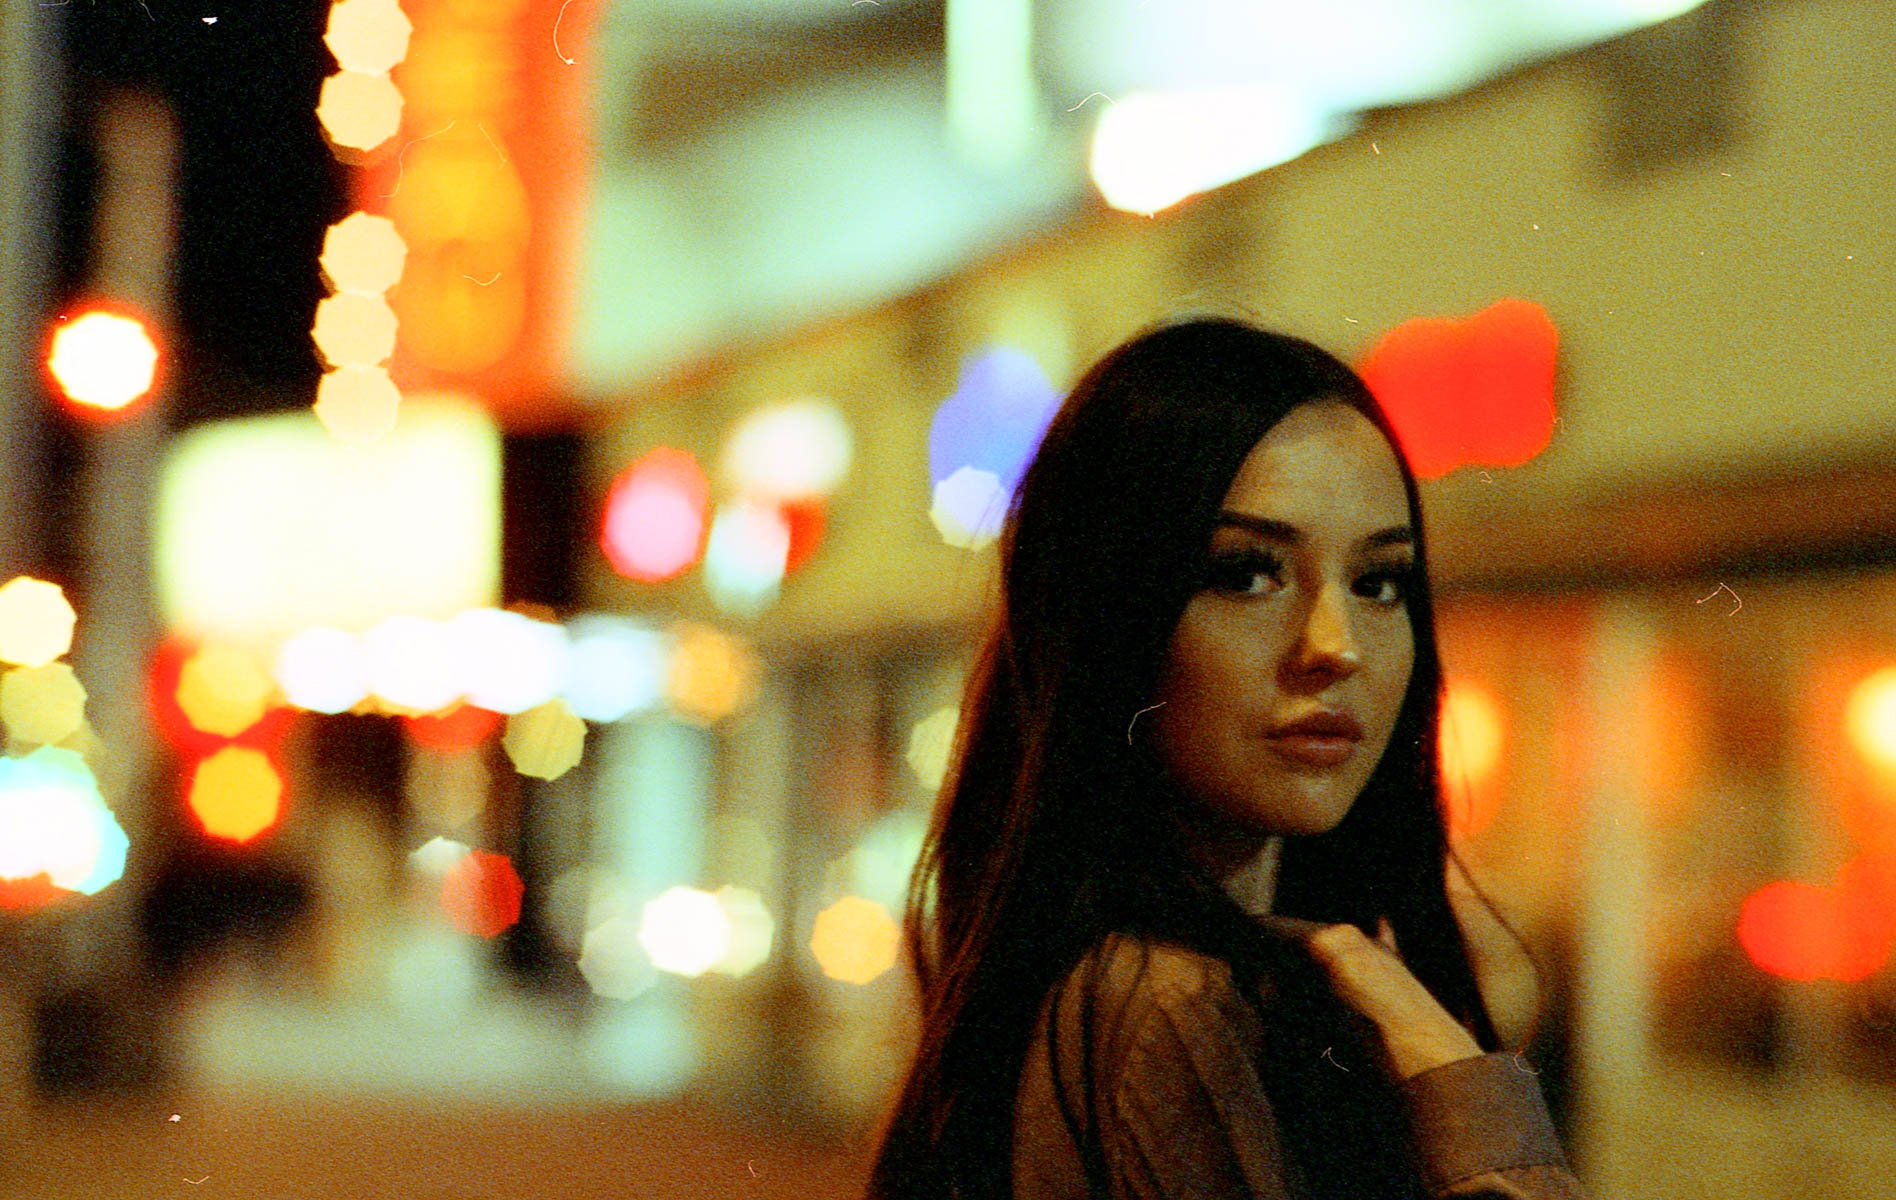 5 Frames With... Cinestill 800T (EI 1250 / 35mm format / Contax 159 MM) - by Dusty Traill-Forbyth